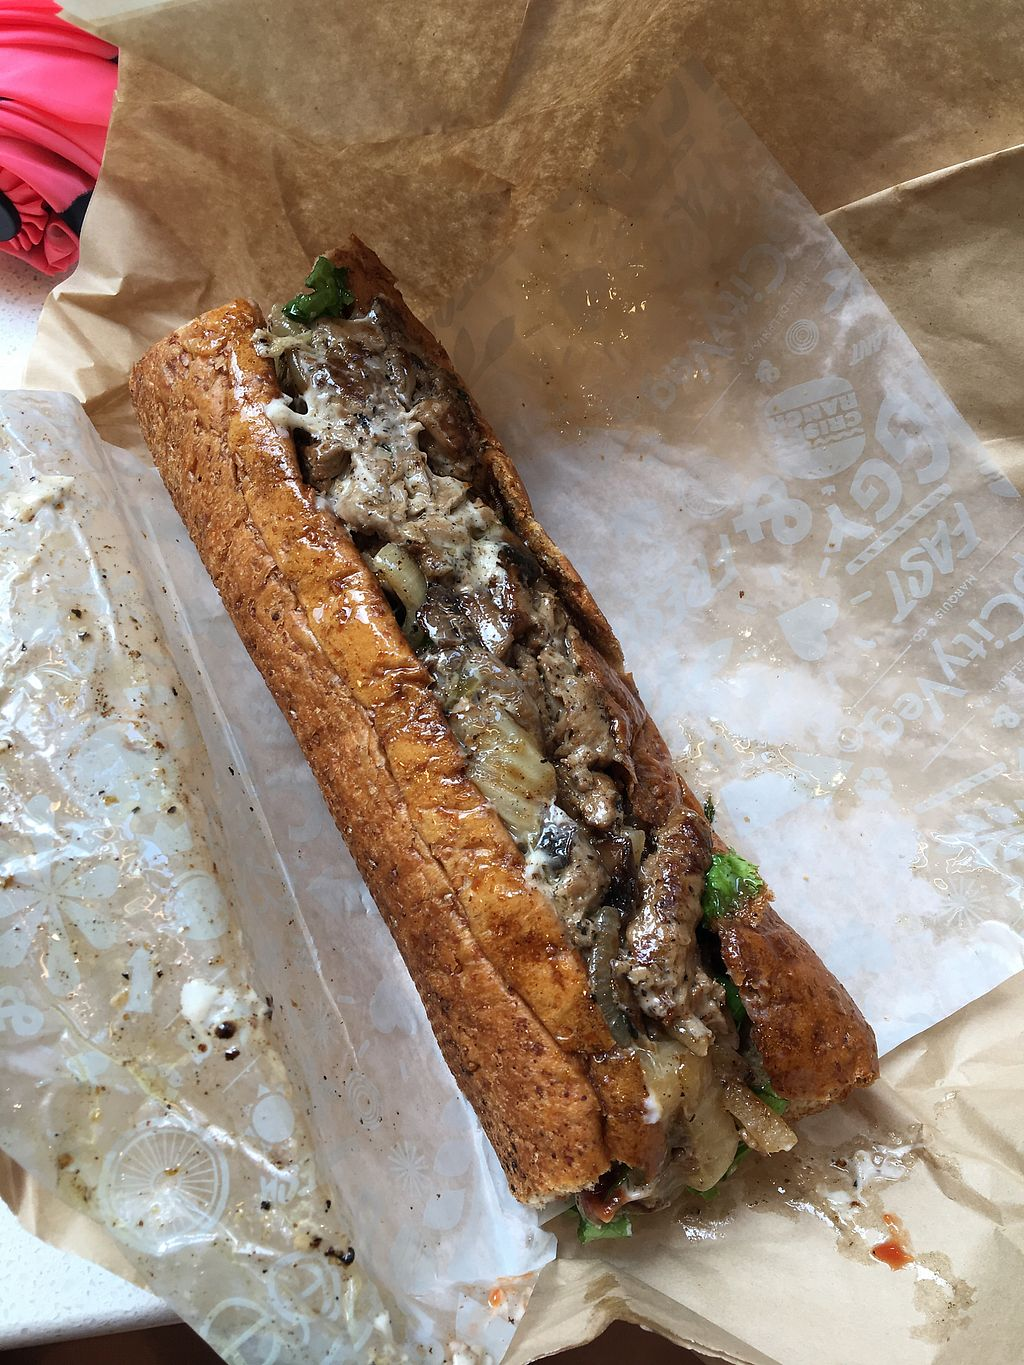 """Photo of HipCityVeg - Broad St  by <a href=""""/members/profile/Thepennsyltuckyvegan"""">Thepennsyltuckyvegan</a> <br/>cheesesteak <br/> June 21, 2017  - <a href='/contact/abuse/image/84195/271946'>Report</a>"""